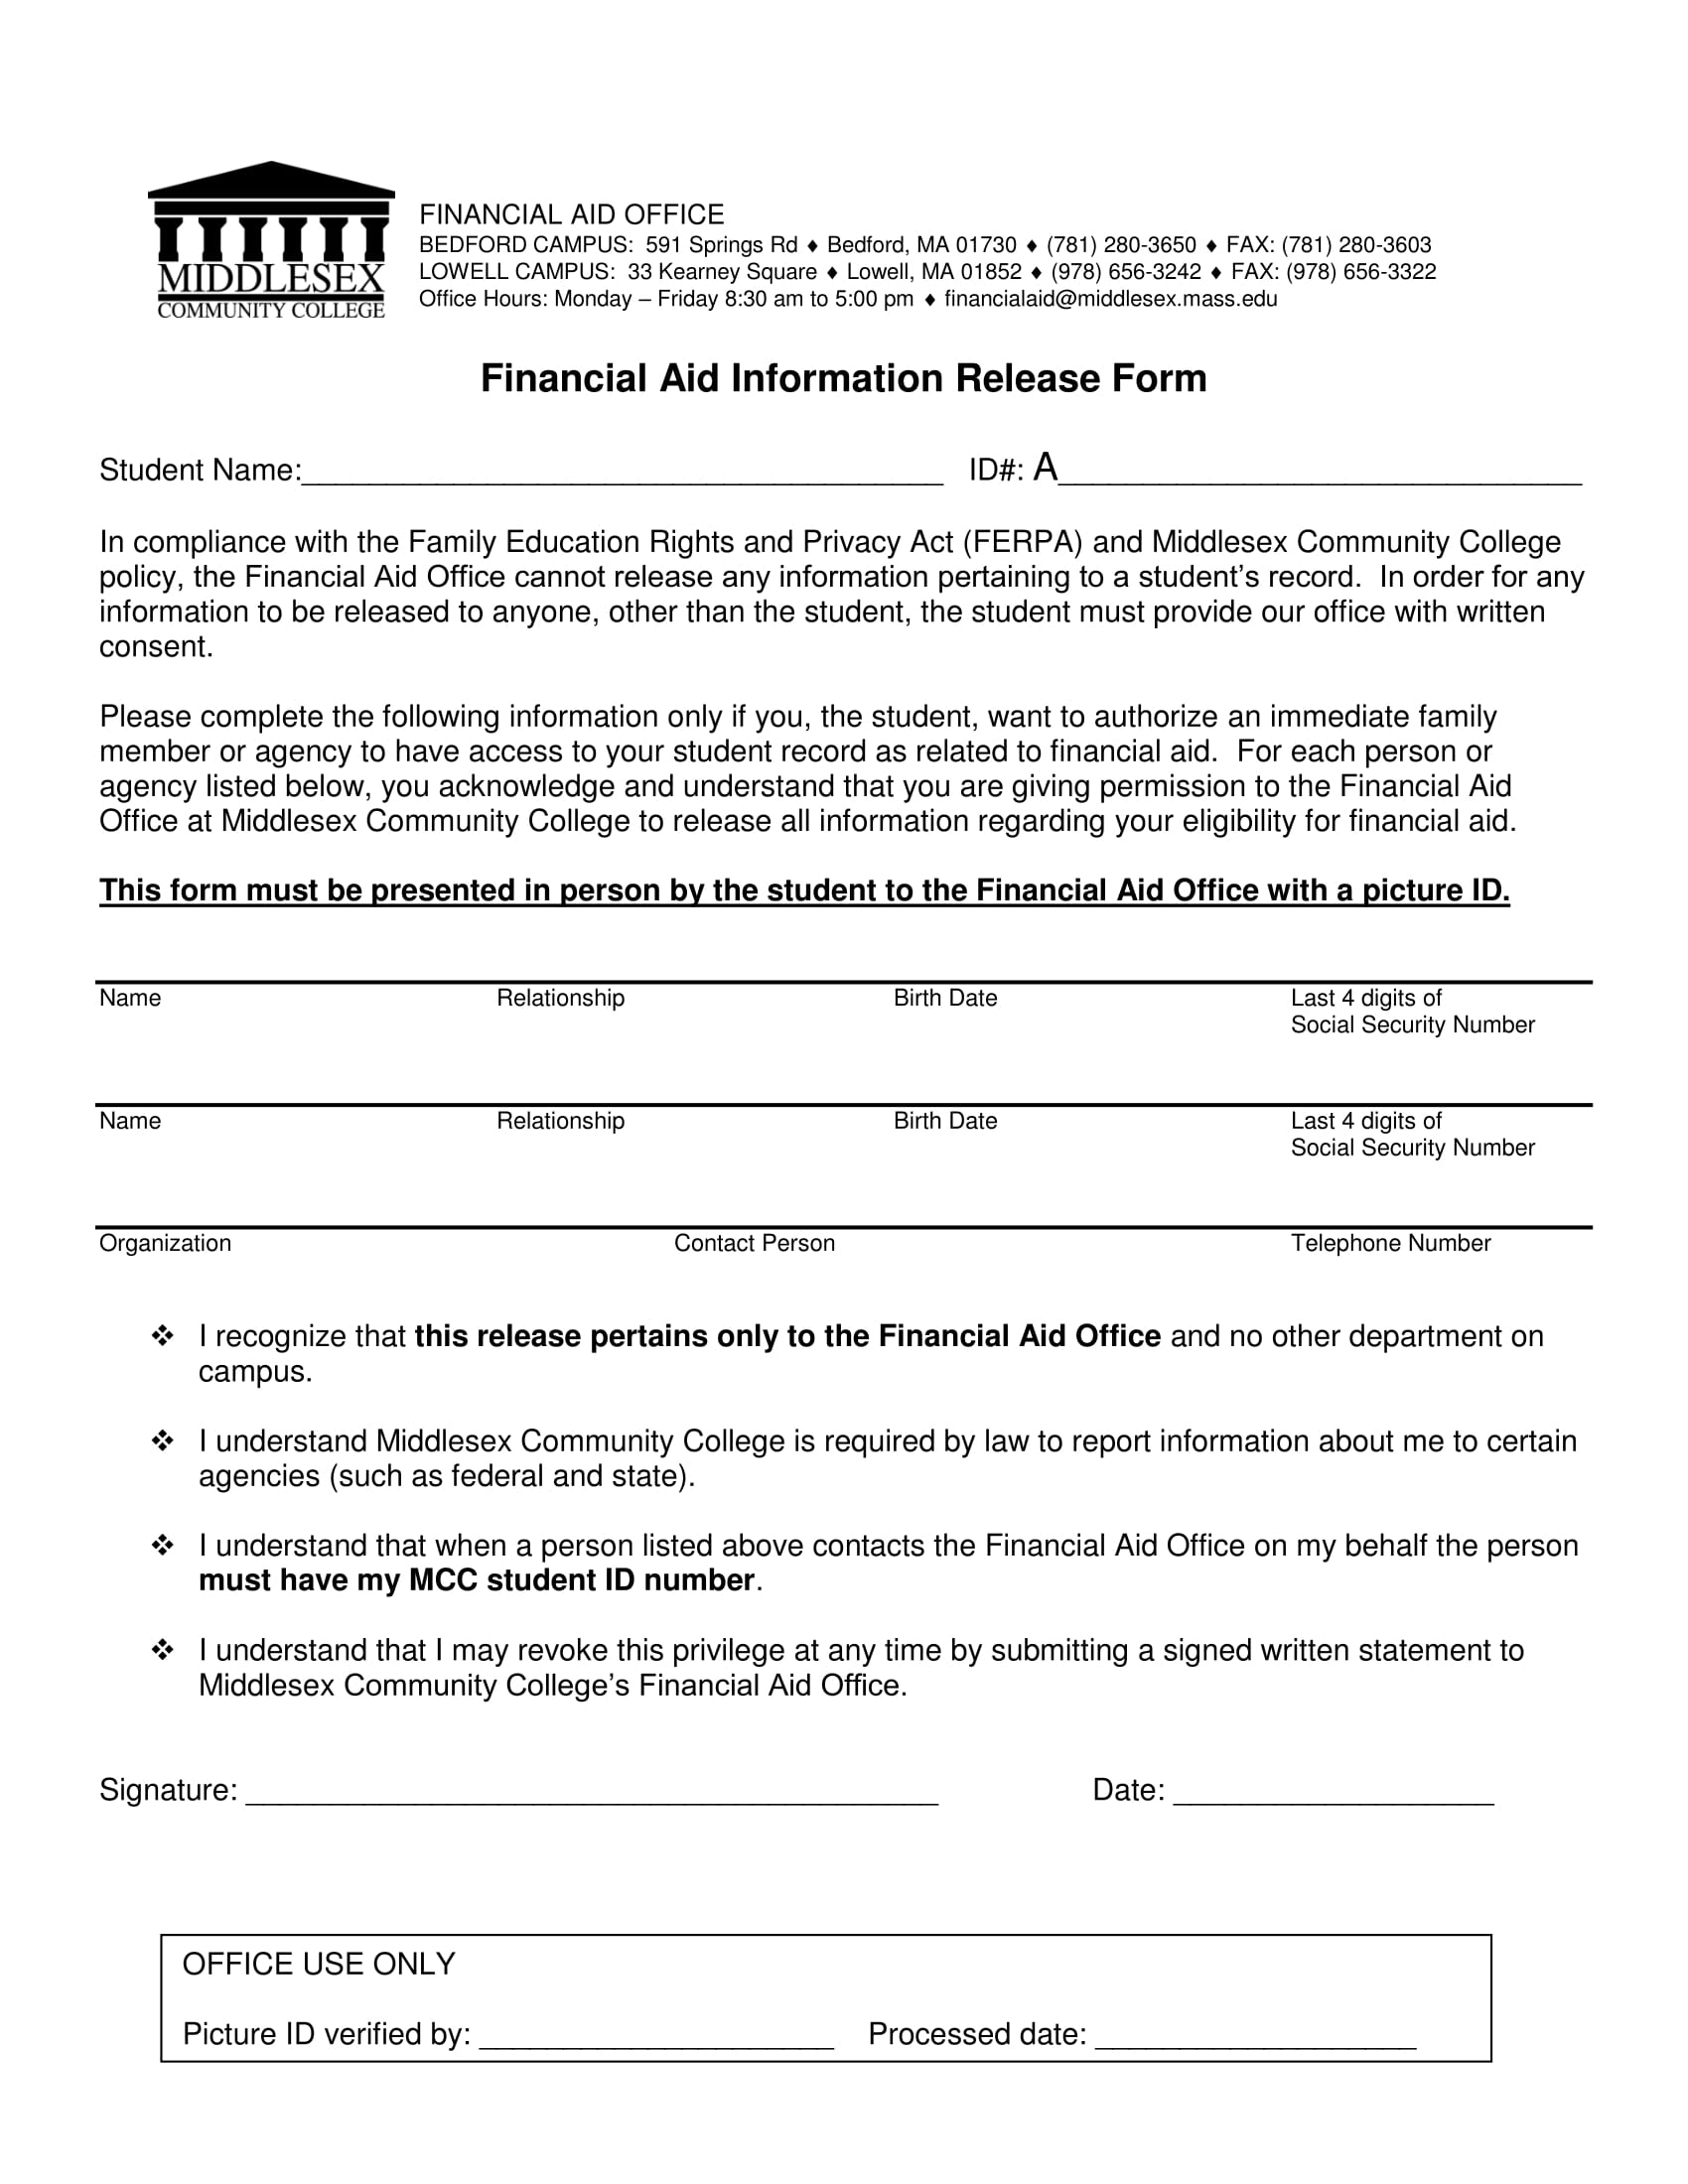 financial aid information release form 1